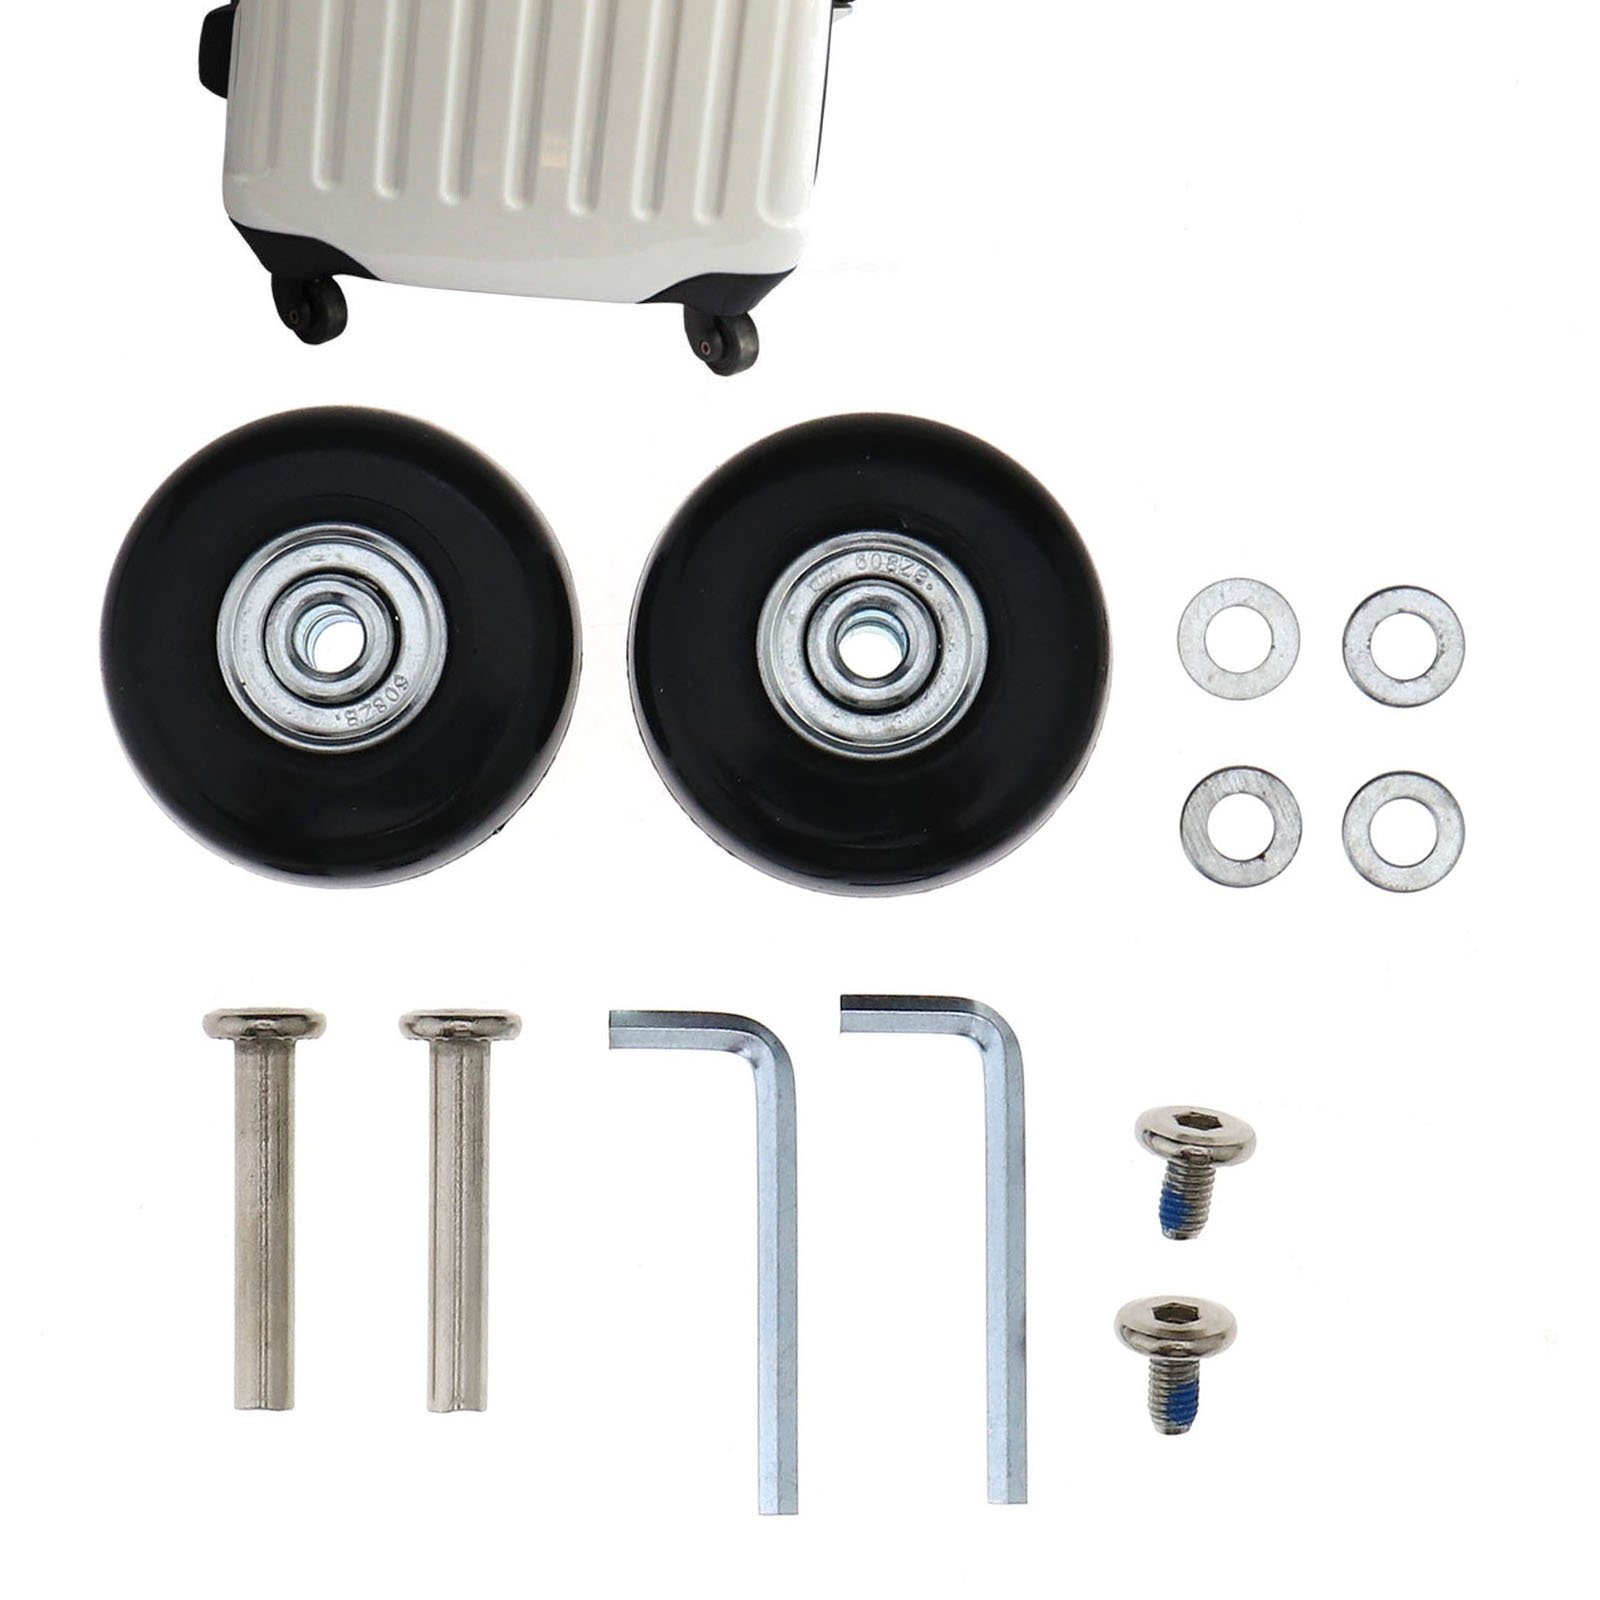 SING F LTD 1 Pair Luggage Suitcase Replacement Wheels Axles Rubber Deluxe Repair OD 45mm by SING F LTD